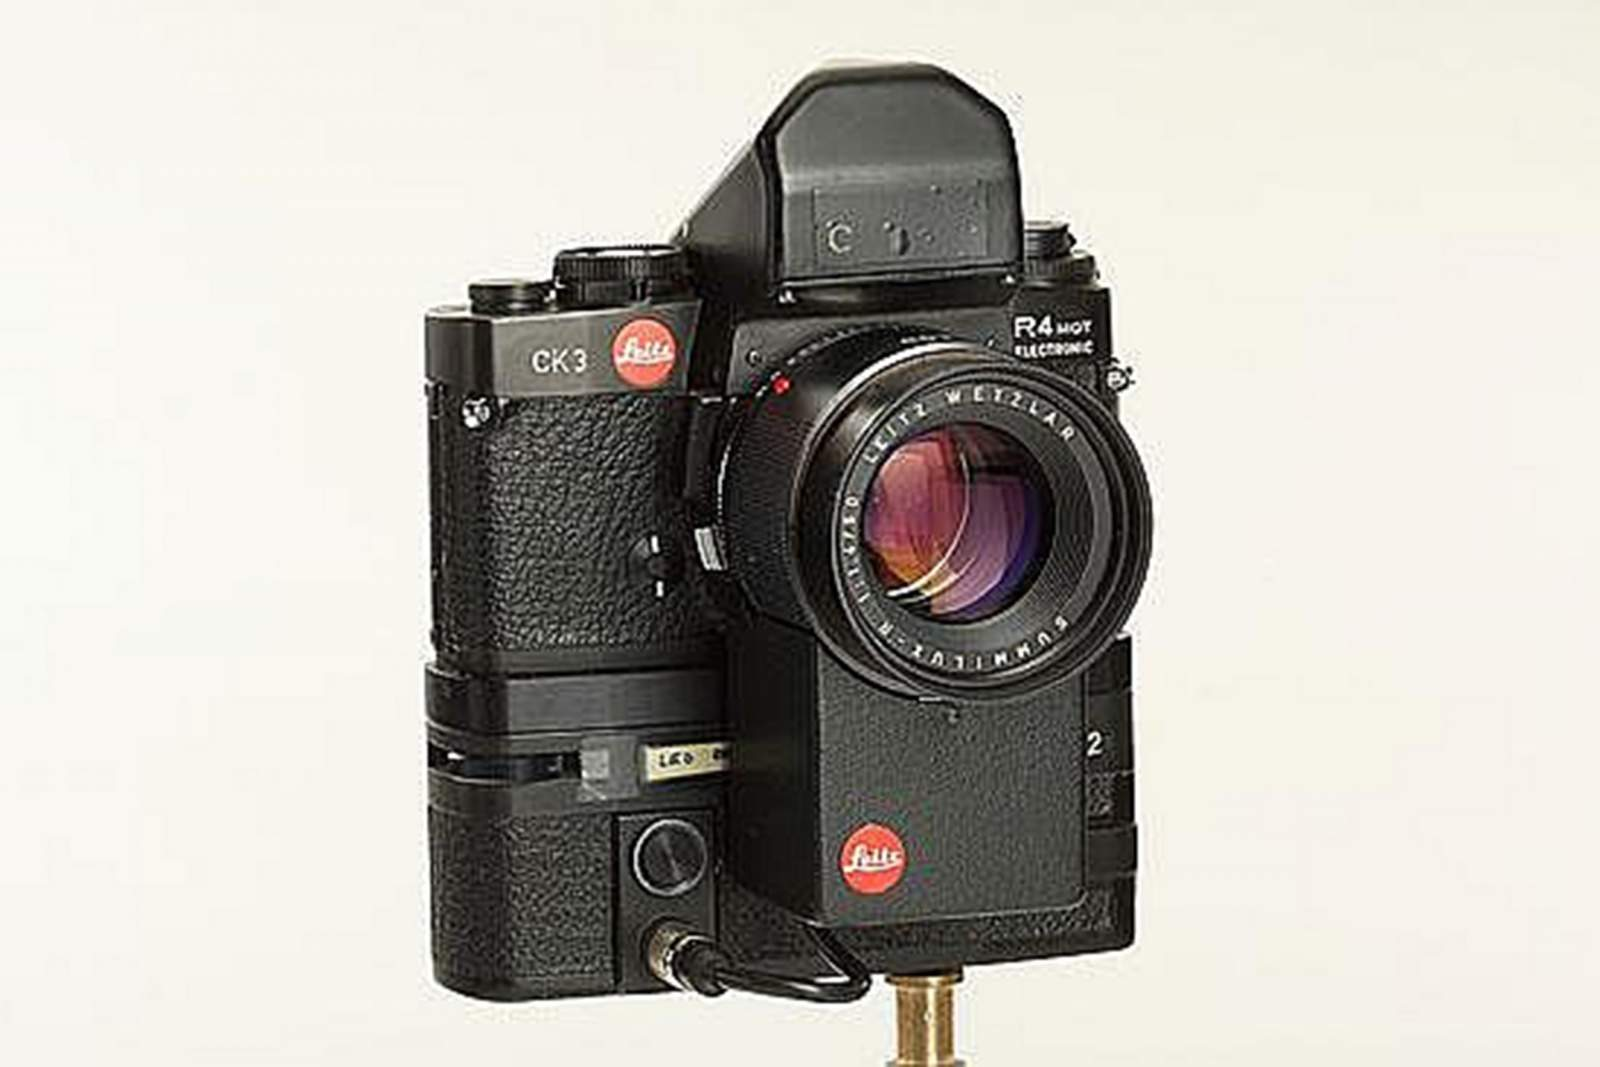 Leica invented the autofocus camera system with the Correfot in 1976.